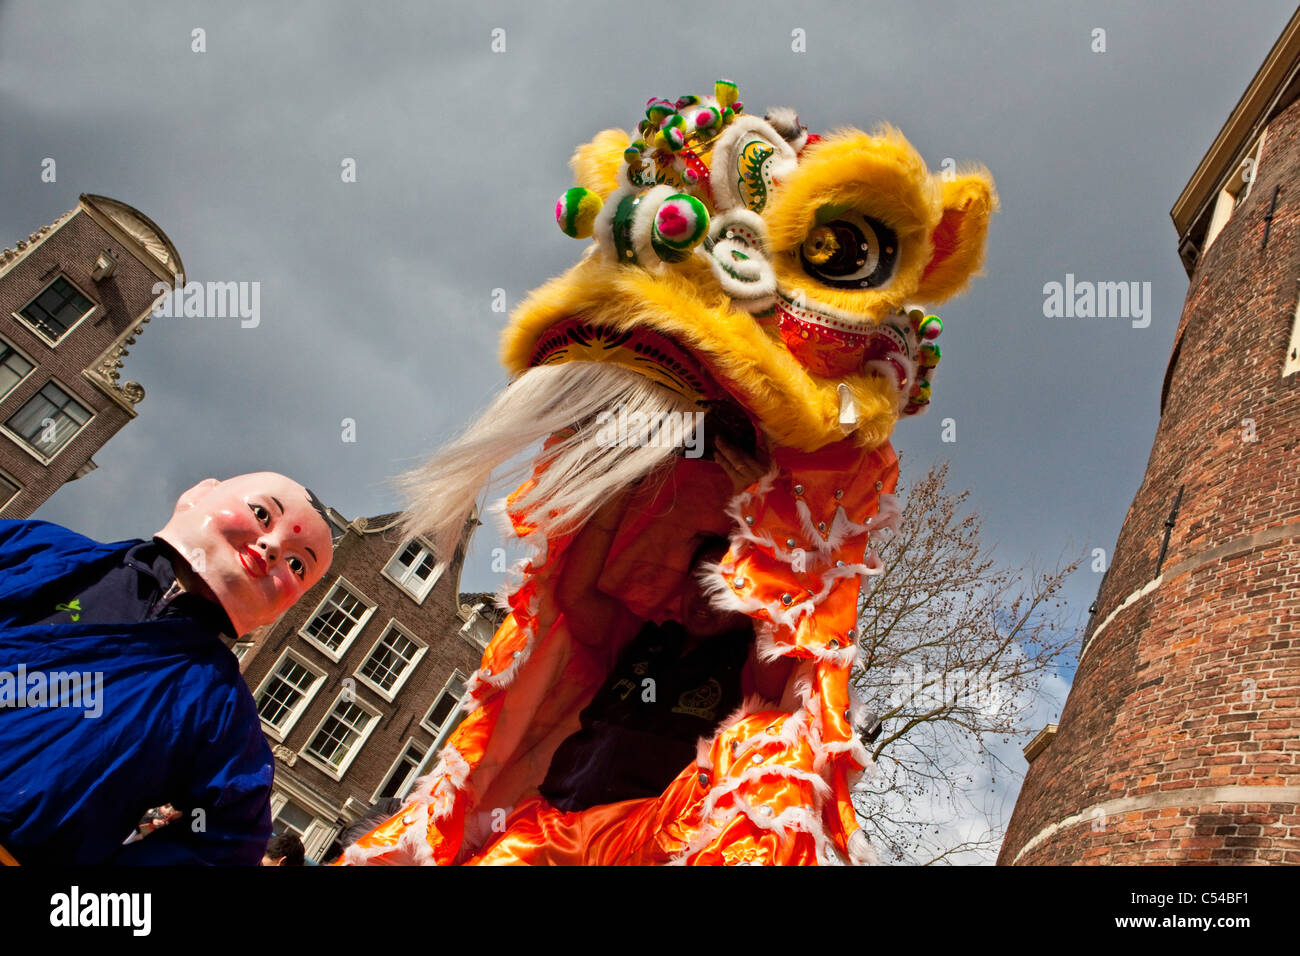 The Netherlands, Amsterdam, Celebrating Chinese New Year on square called Nieuwmarkt. - Stock Image